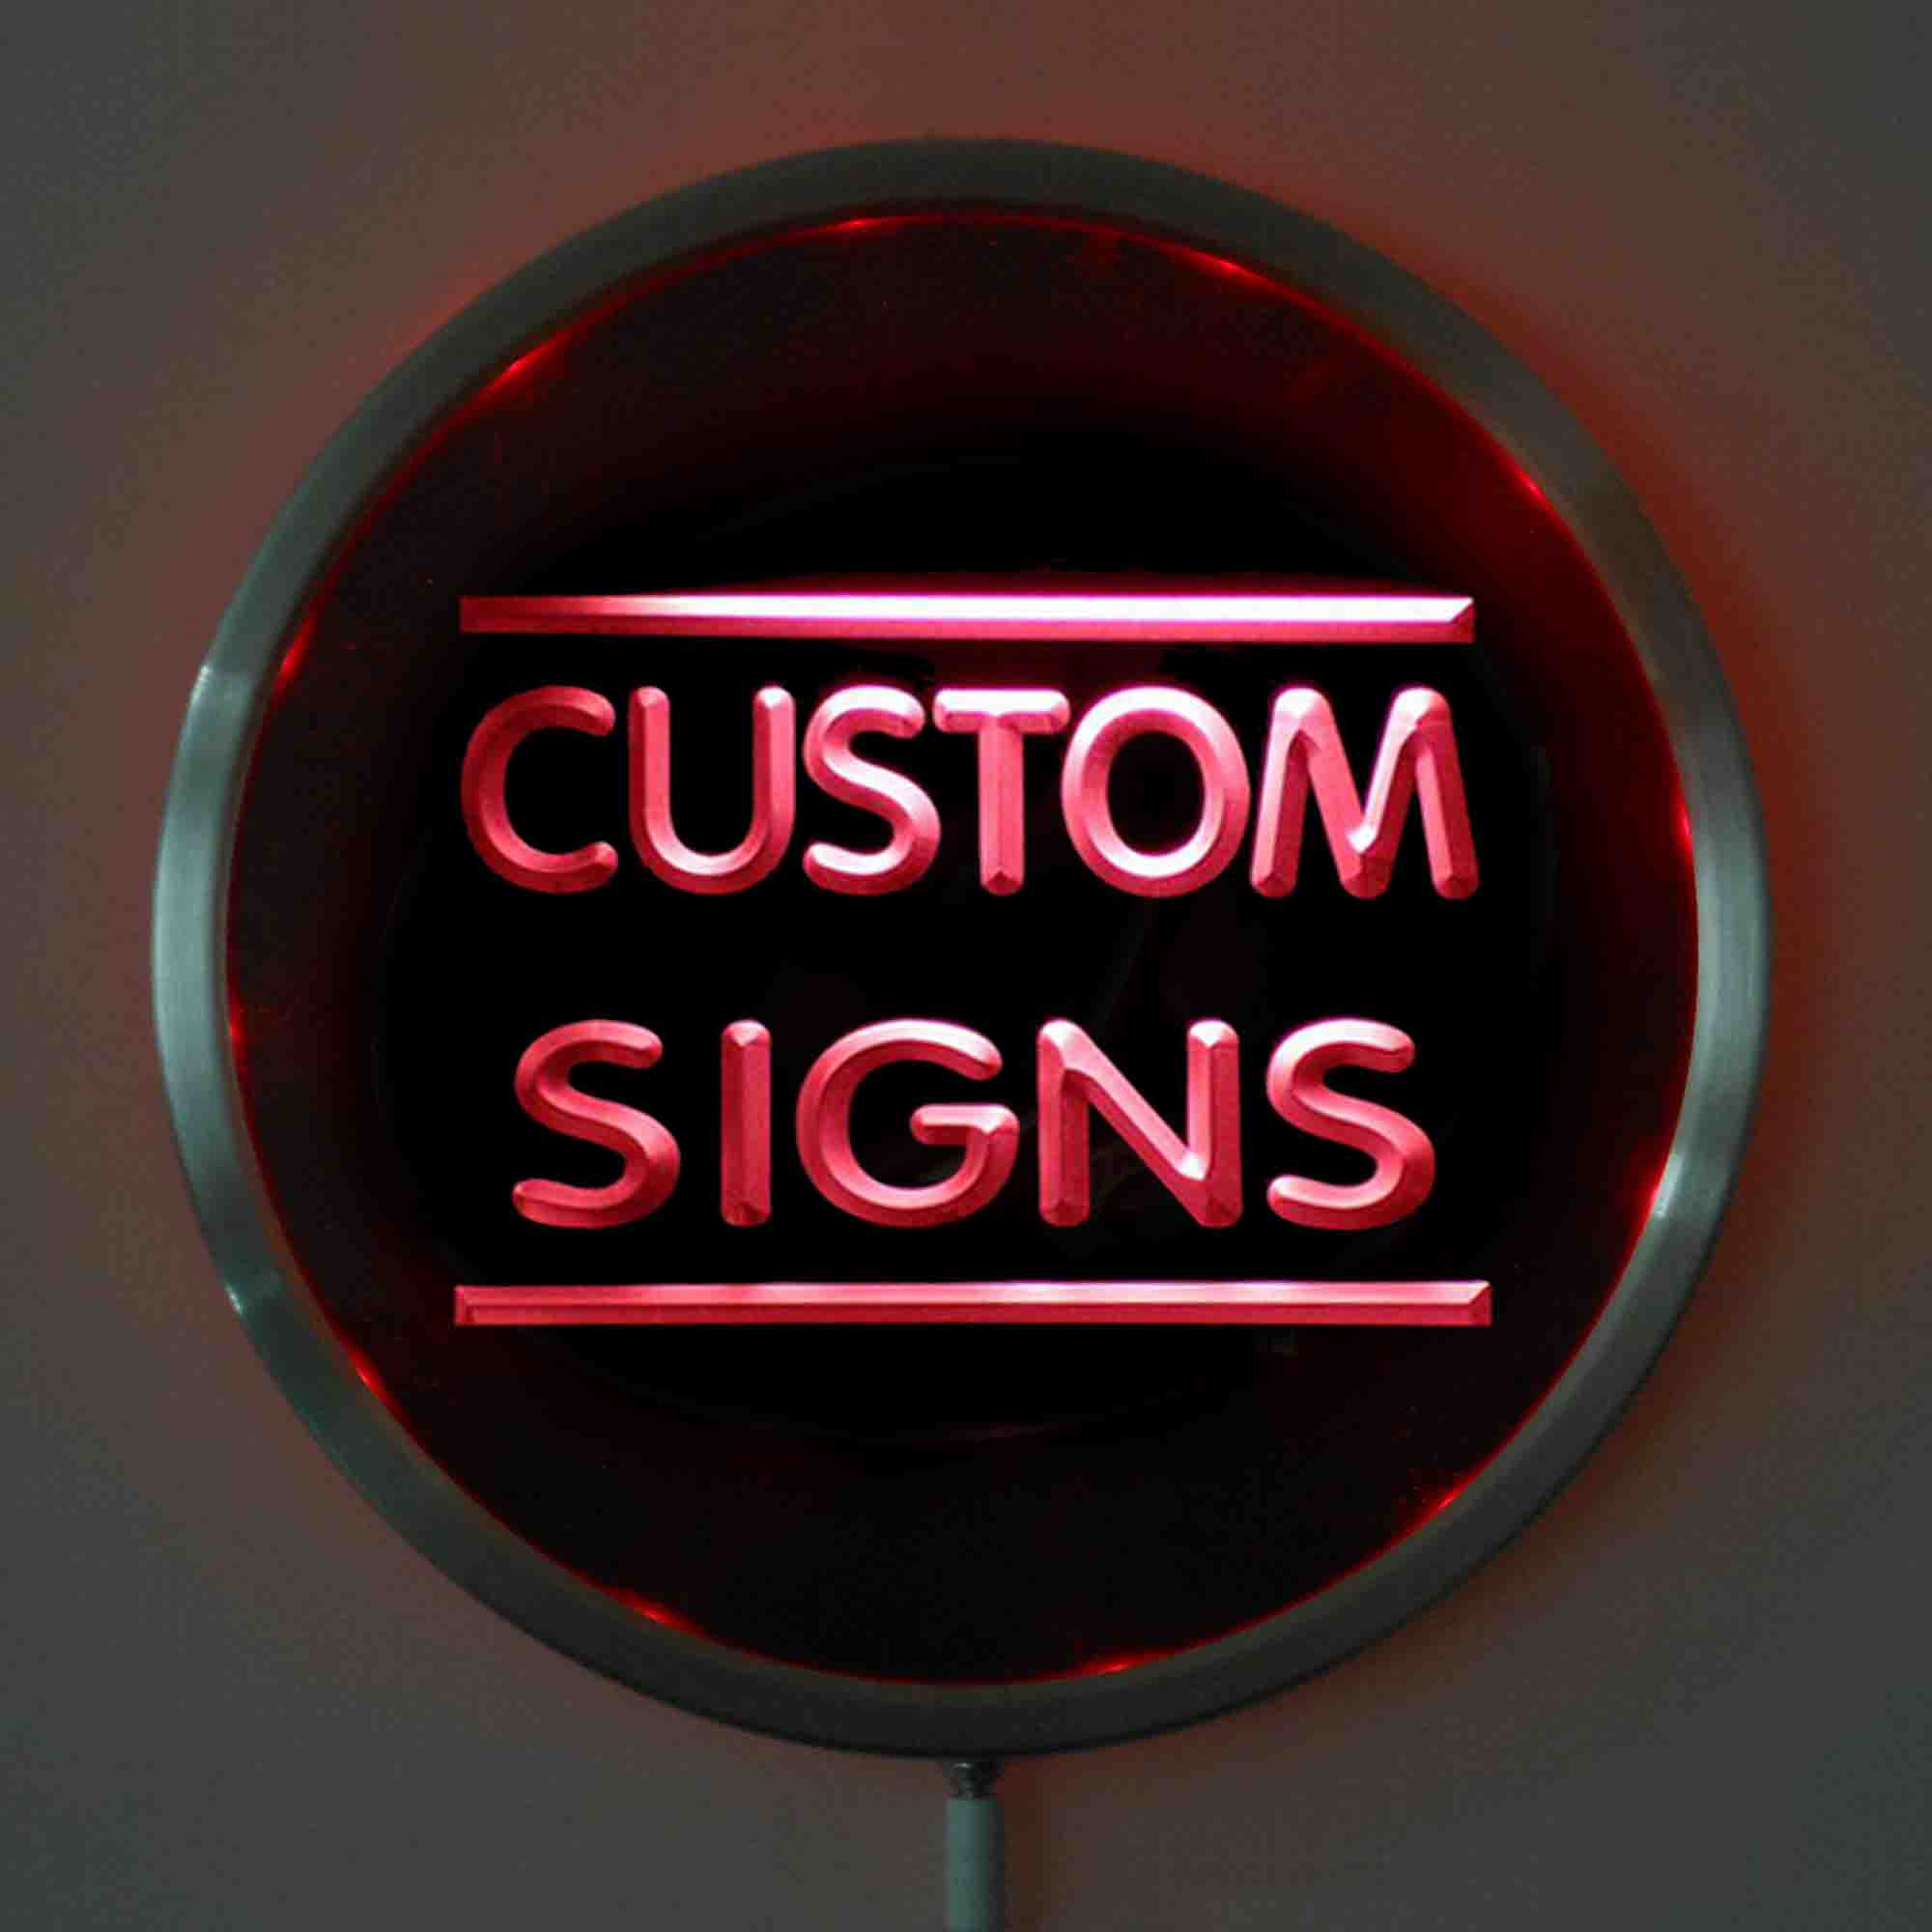 New Round Custom LED Neon Signs 25cm/ 10 Inch - Design Your Own Circle LED Signs With RGB Multi-Color Remote Wireless Control